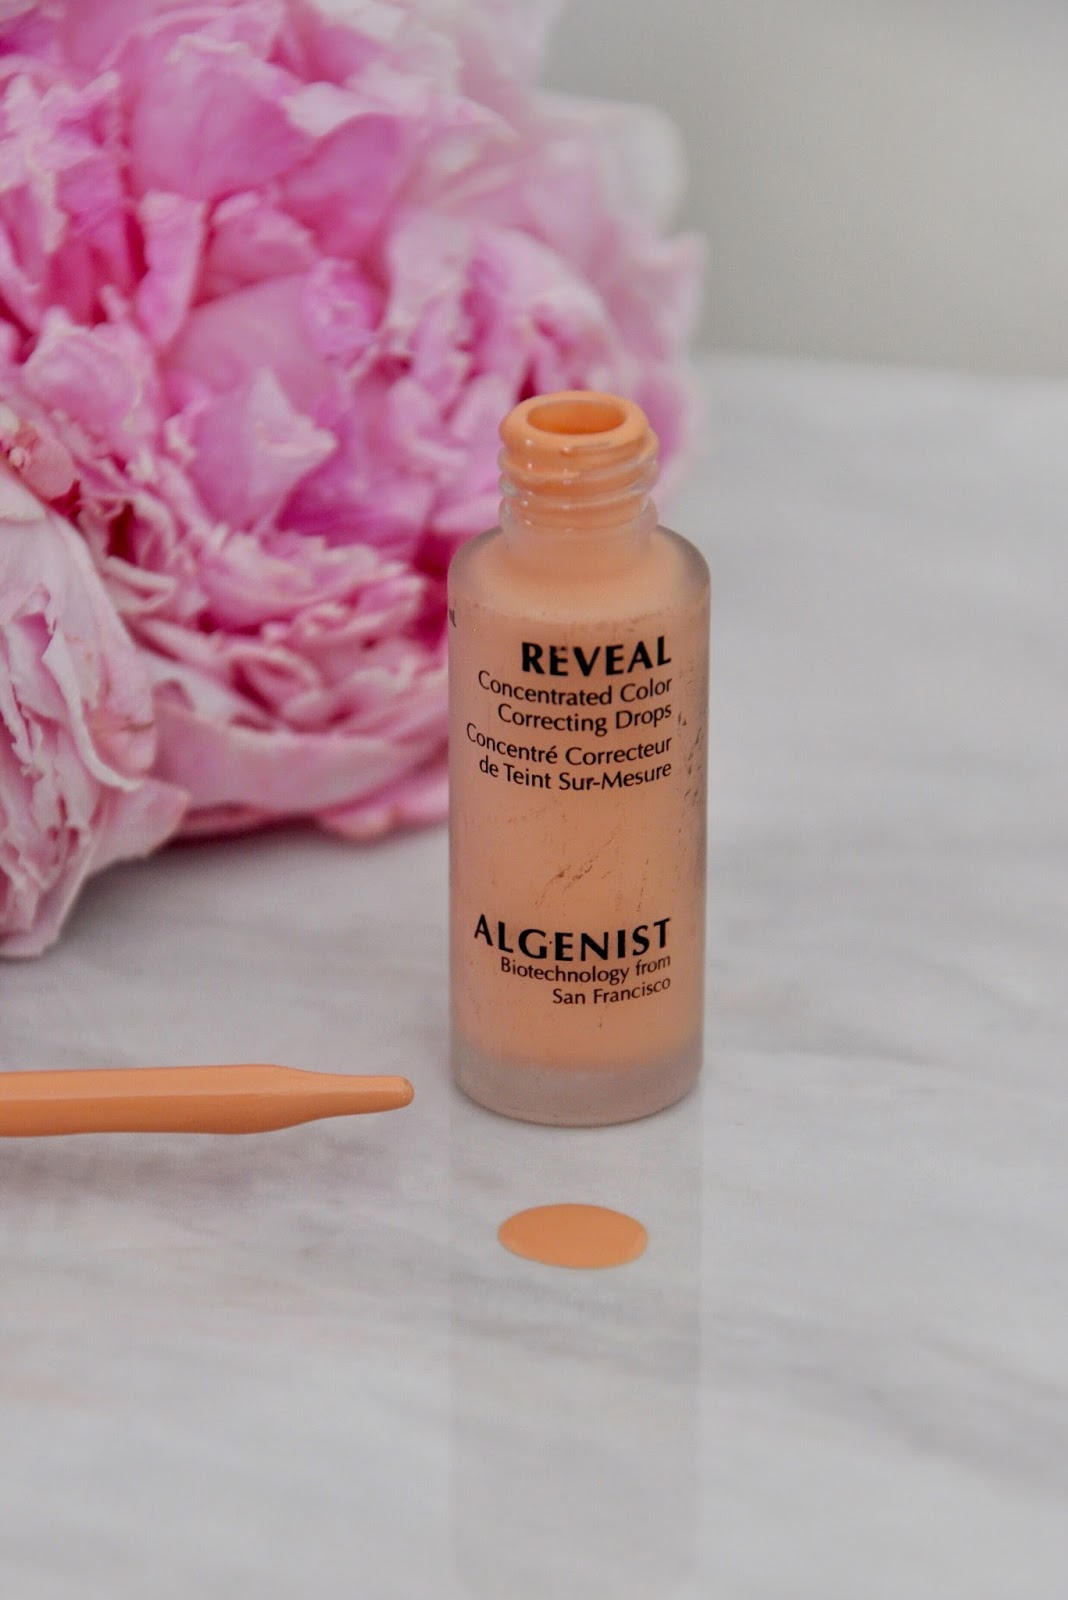 REVEAL Concentrated Color Correcting Drops by algenist #22